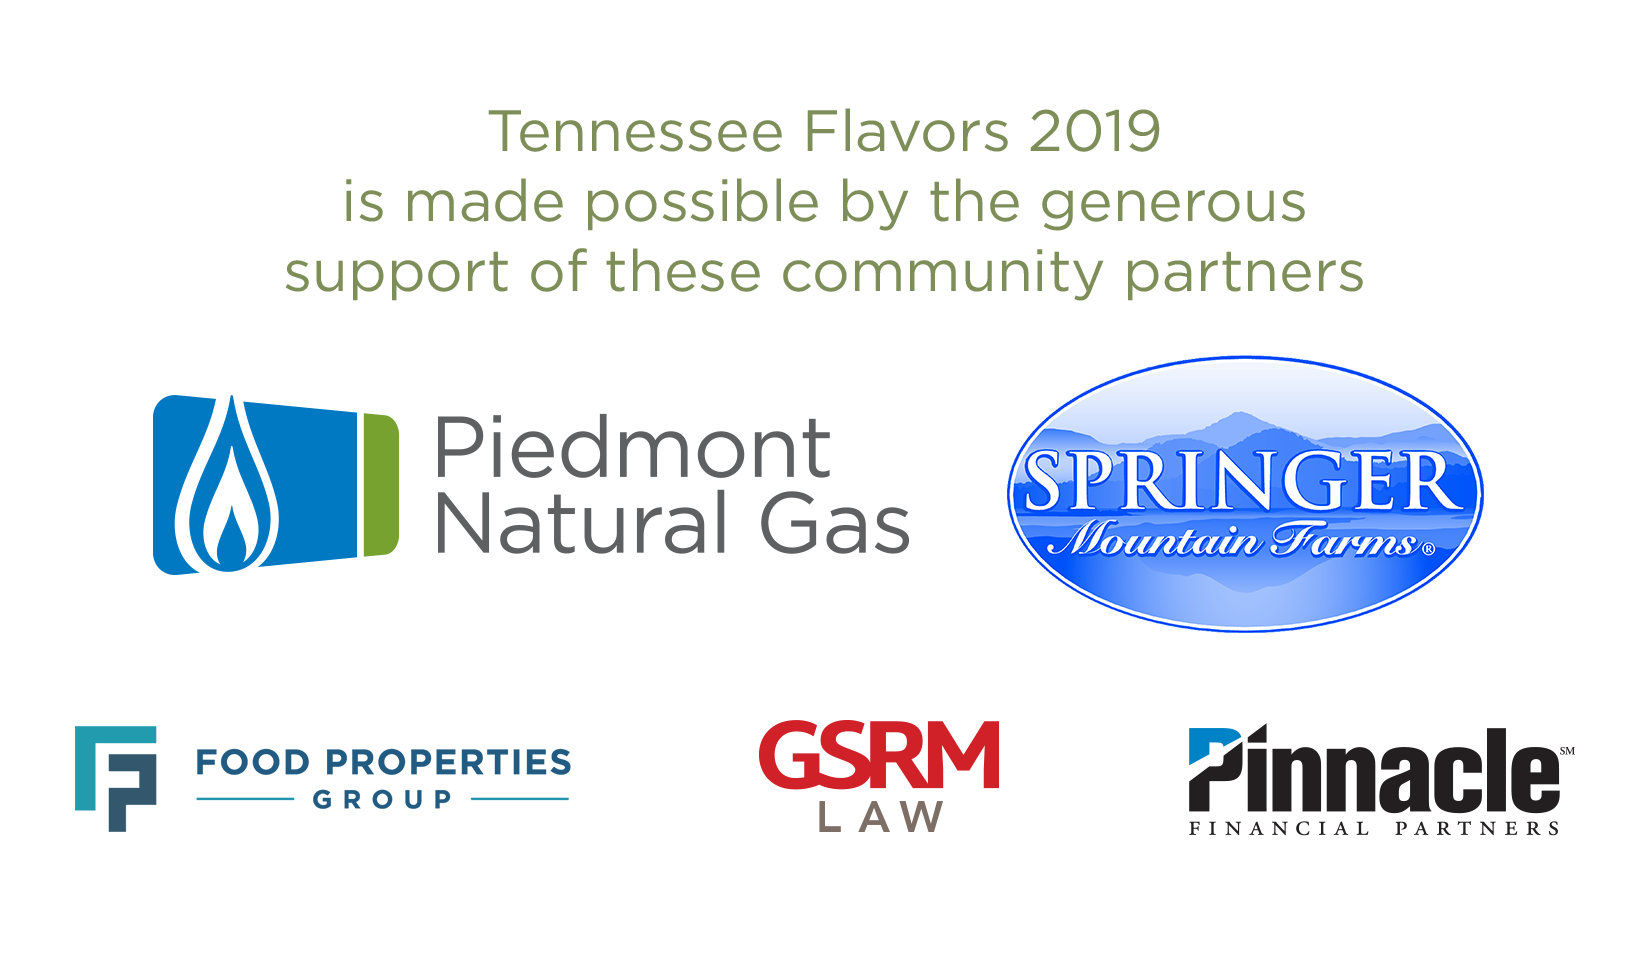 Tennessee Flavors 2019 is made possible by the generous support of these community sponsors: Piedmont Natural Gas, Springer Mountain Farms, Food Properties Group, GSRM Law, and Pinnacle Financial Partners